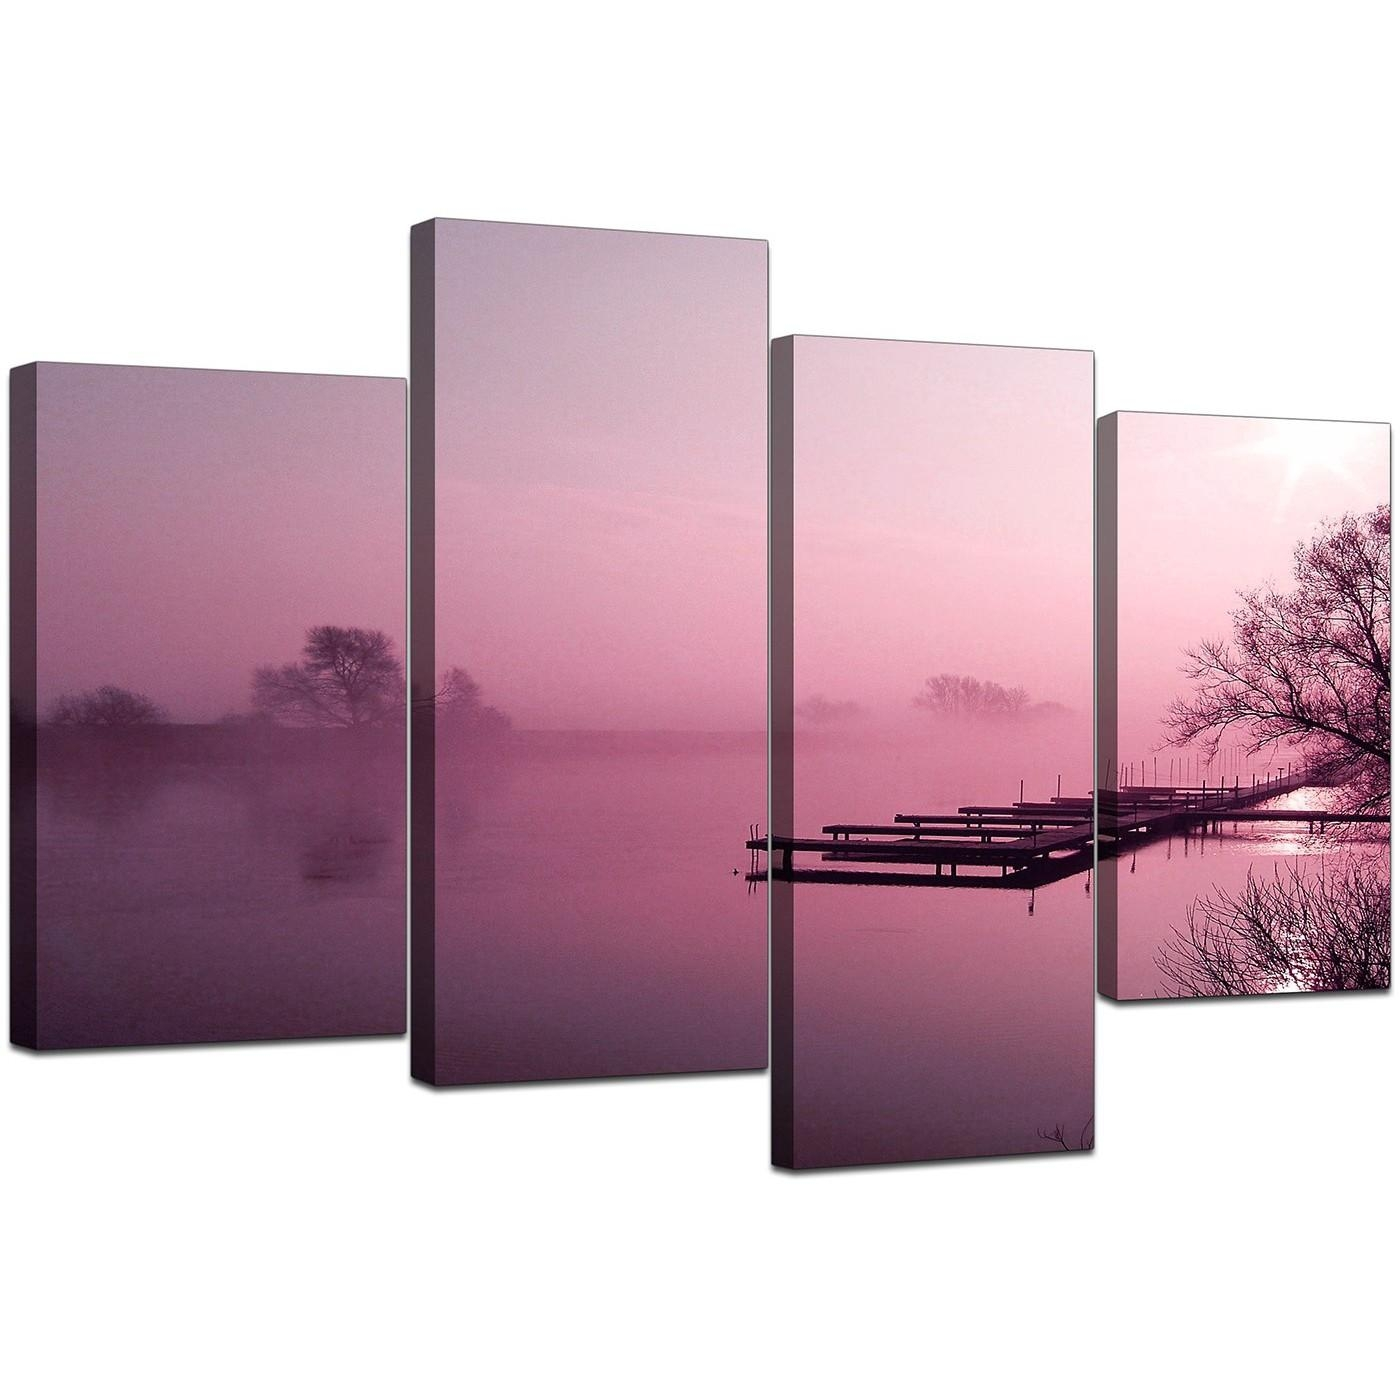 Canvas Pictures Of River Landscape In Plum For Your Dining Room Intended For Plum Coloured Wall Art (View 5 of 20)